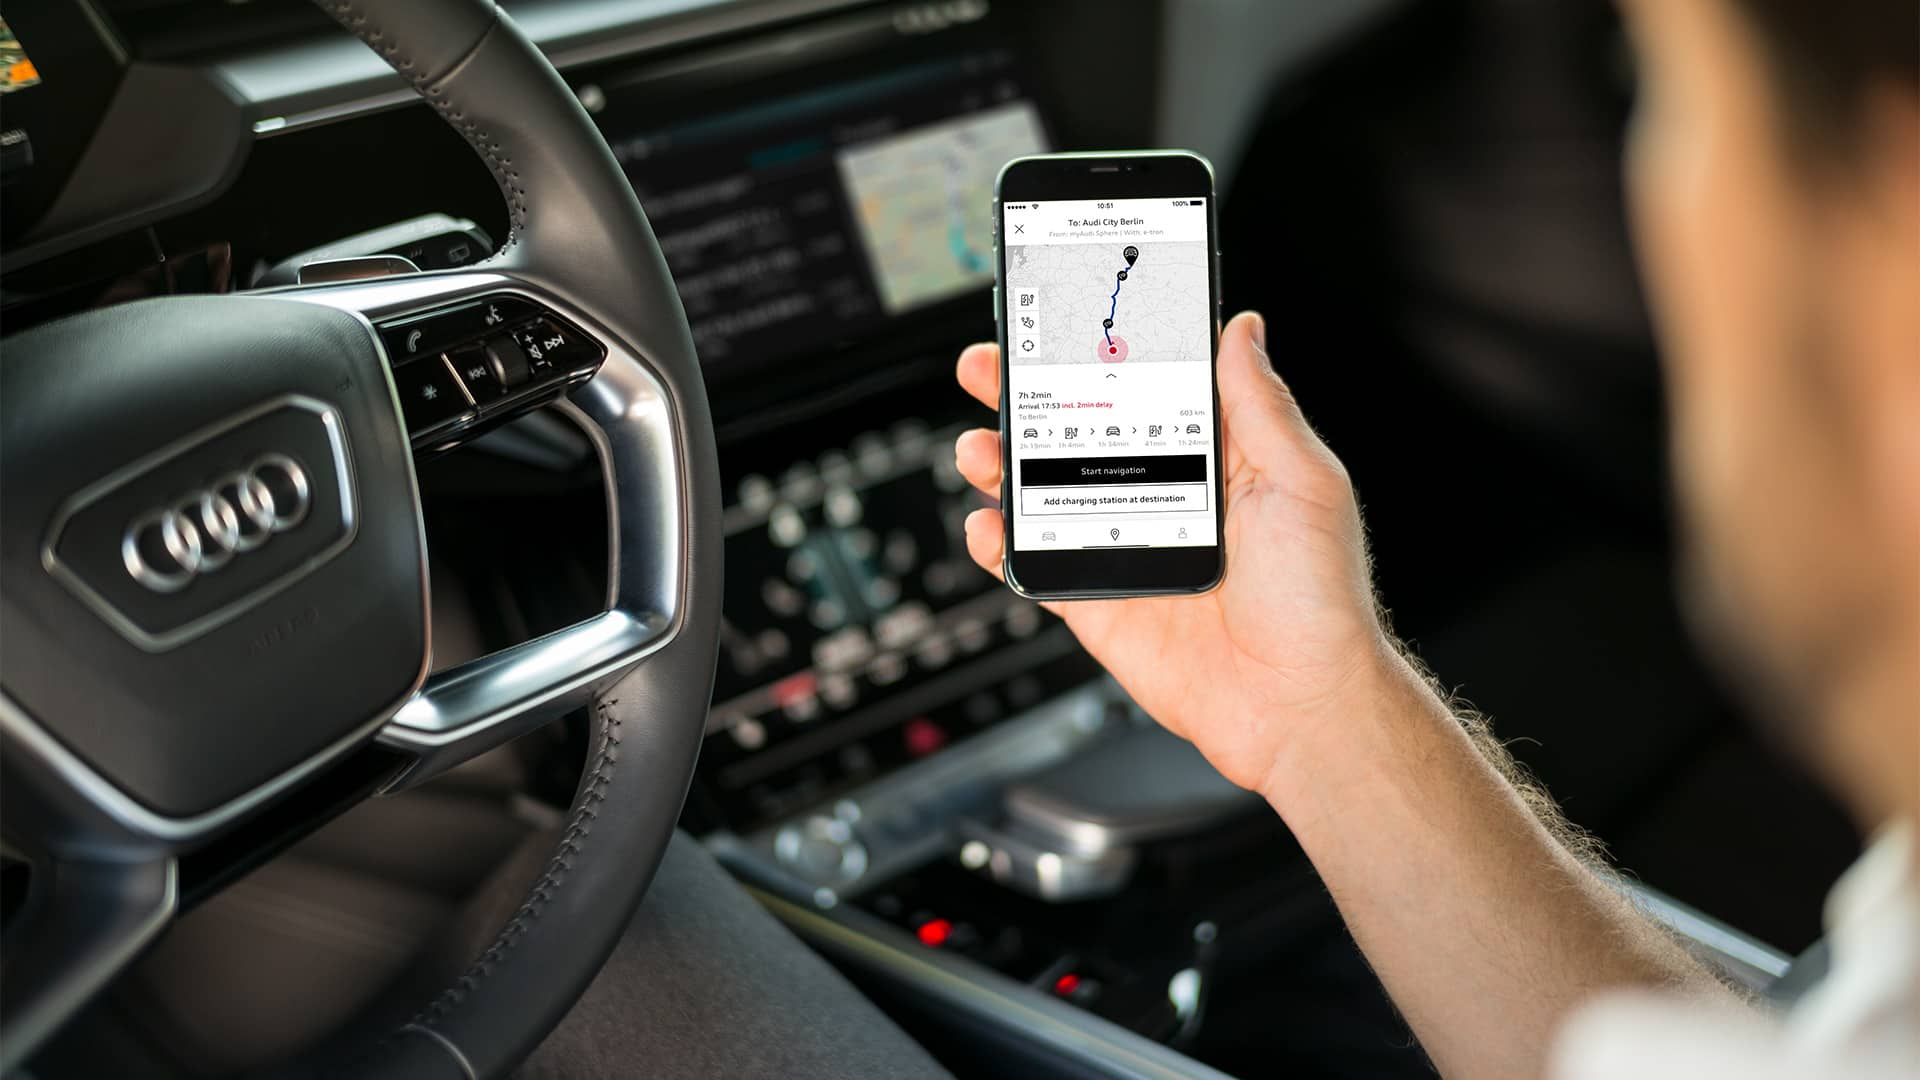 The myAudi app connects you to your Audi